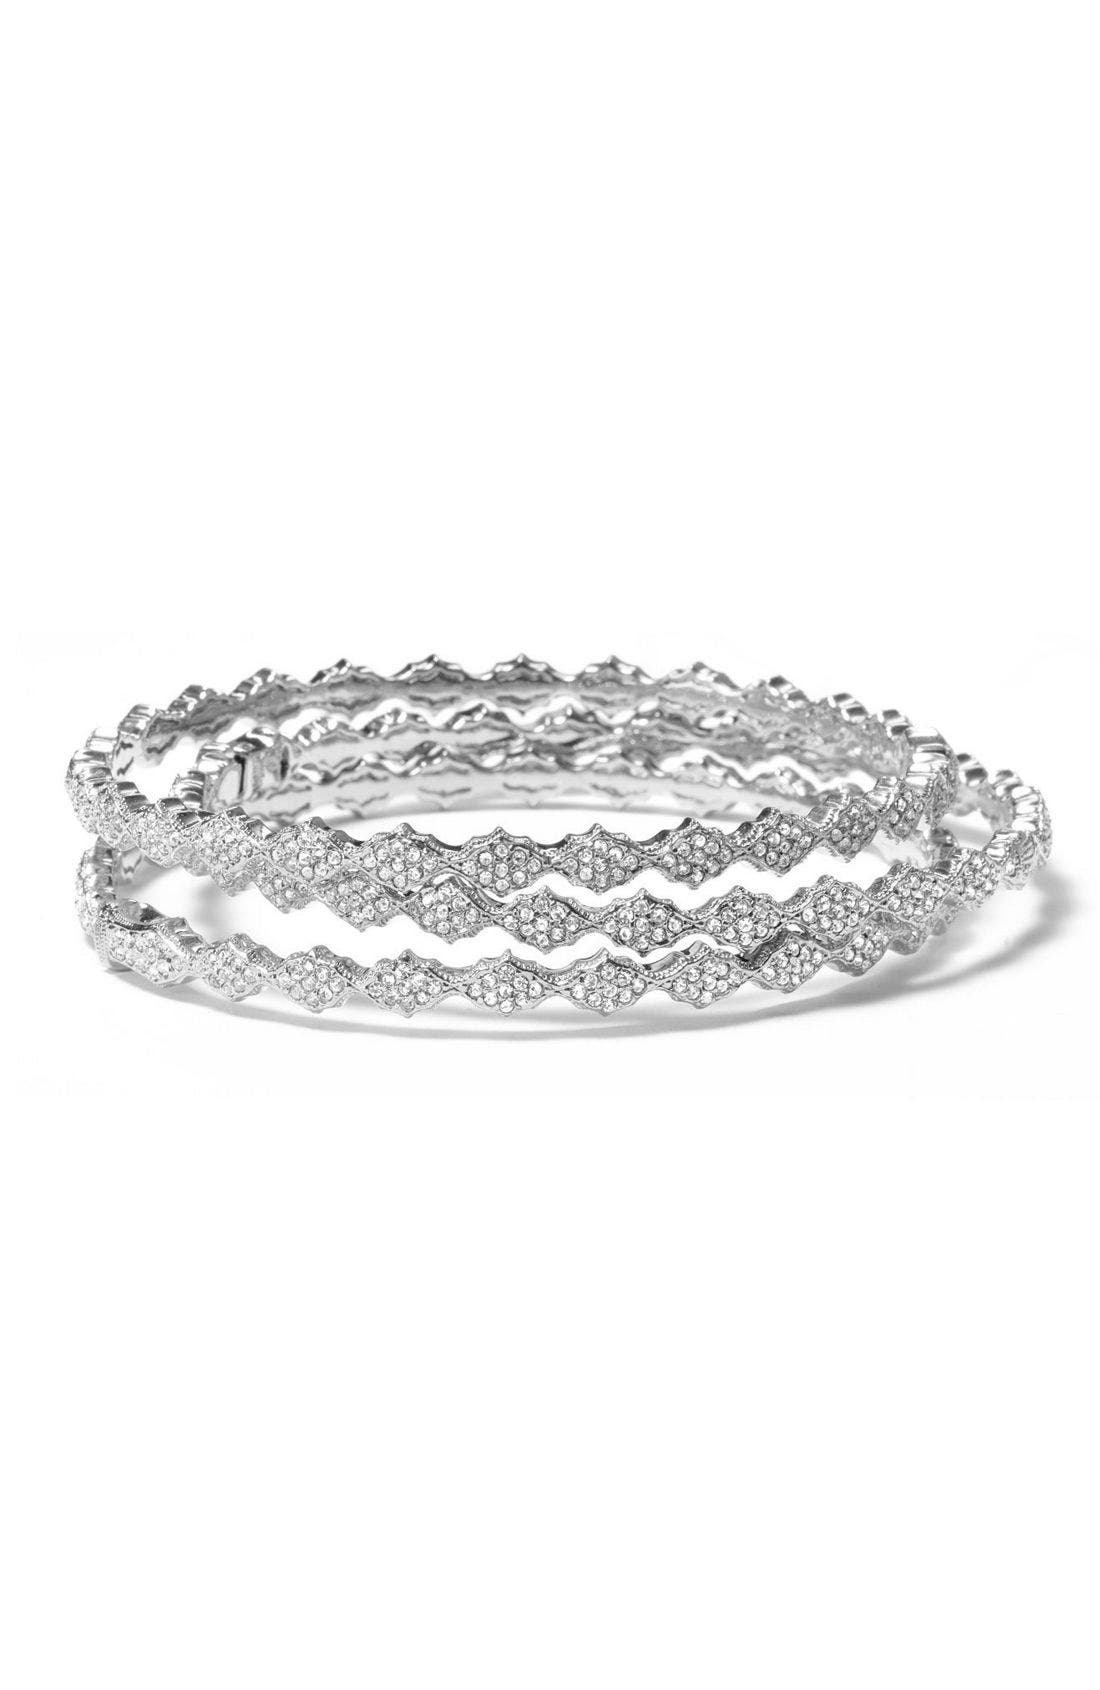 Alternate Image 1 Selected - Nadri Crystal Filigree Bangle Bracelet